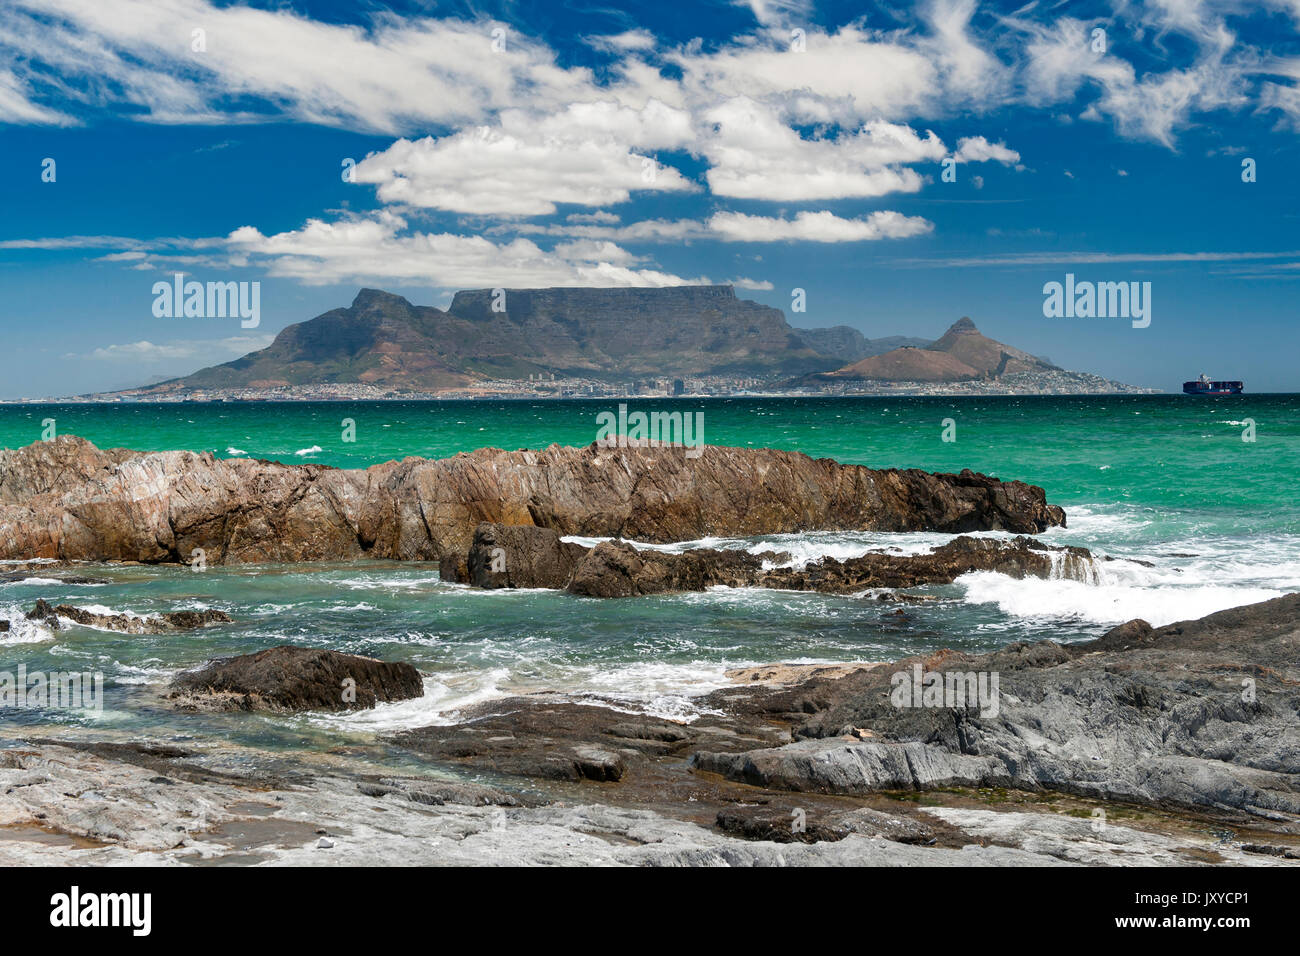 Table Mountain and Cape Town viewed across Table Bay from Blouberg. - Stock Image